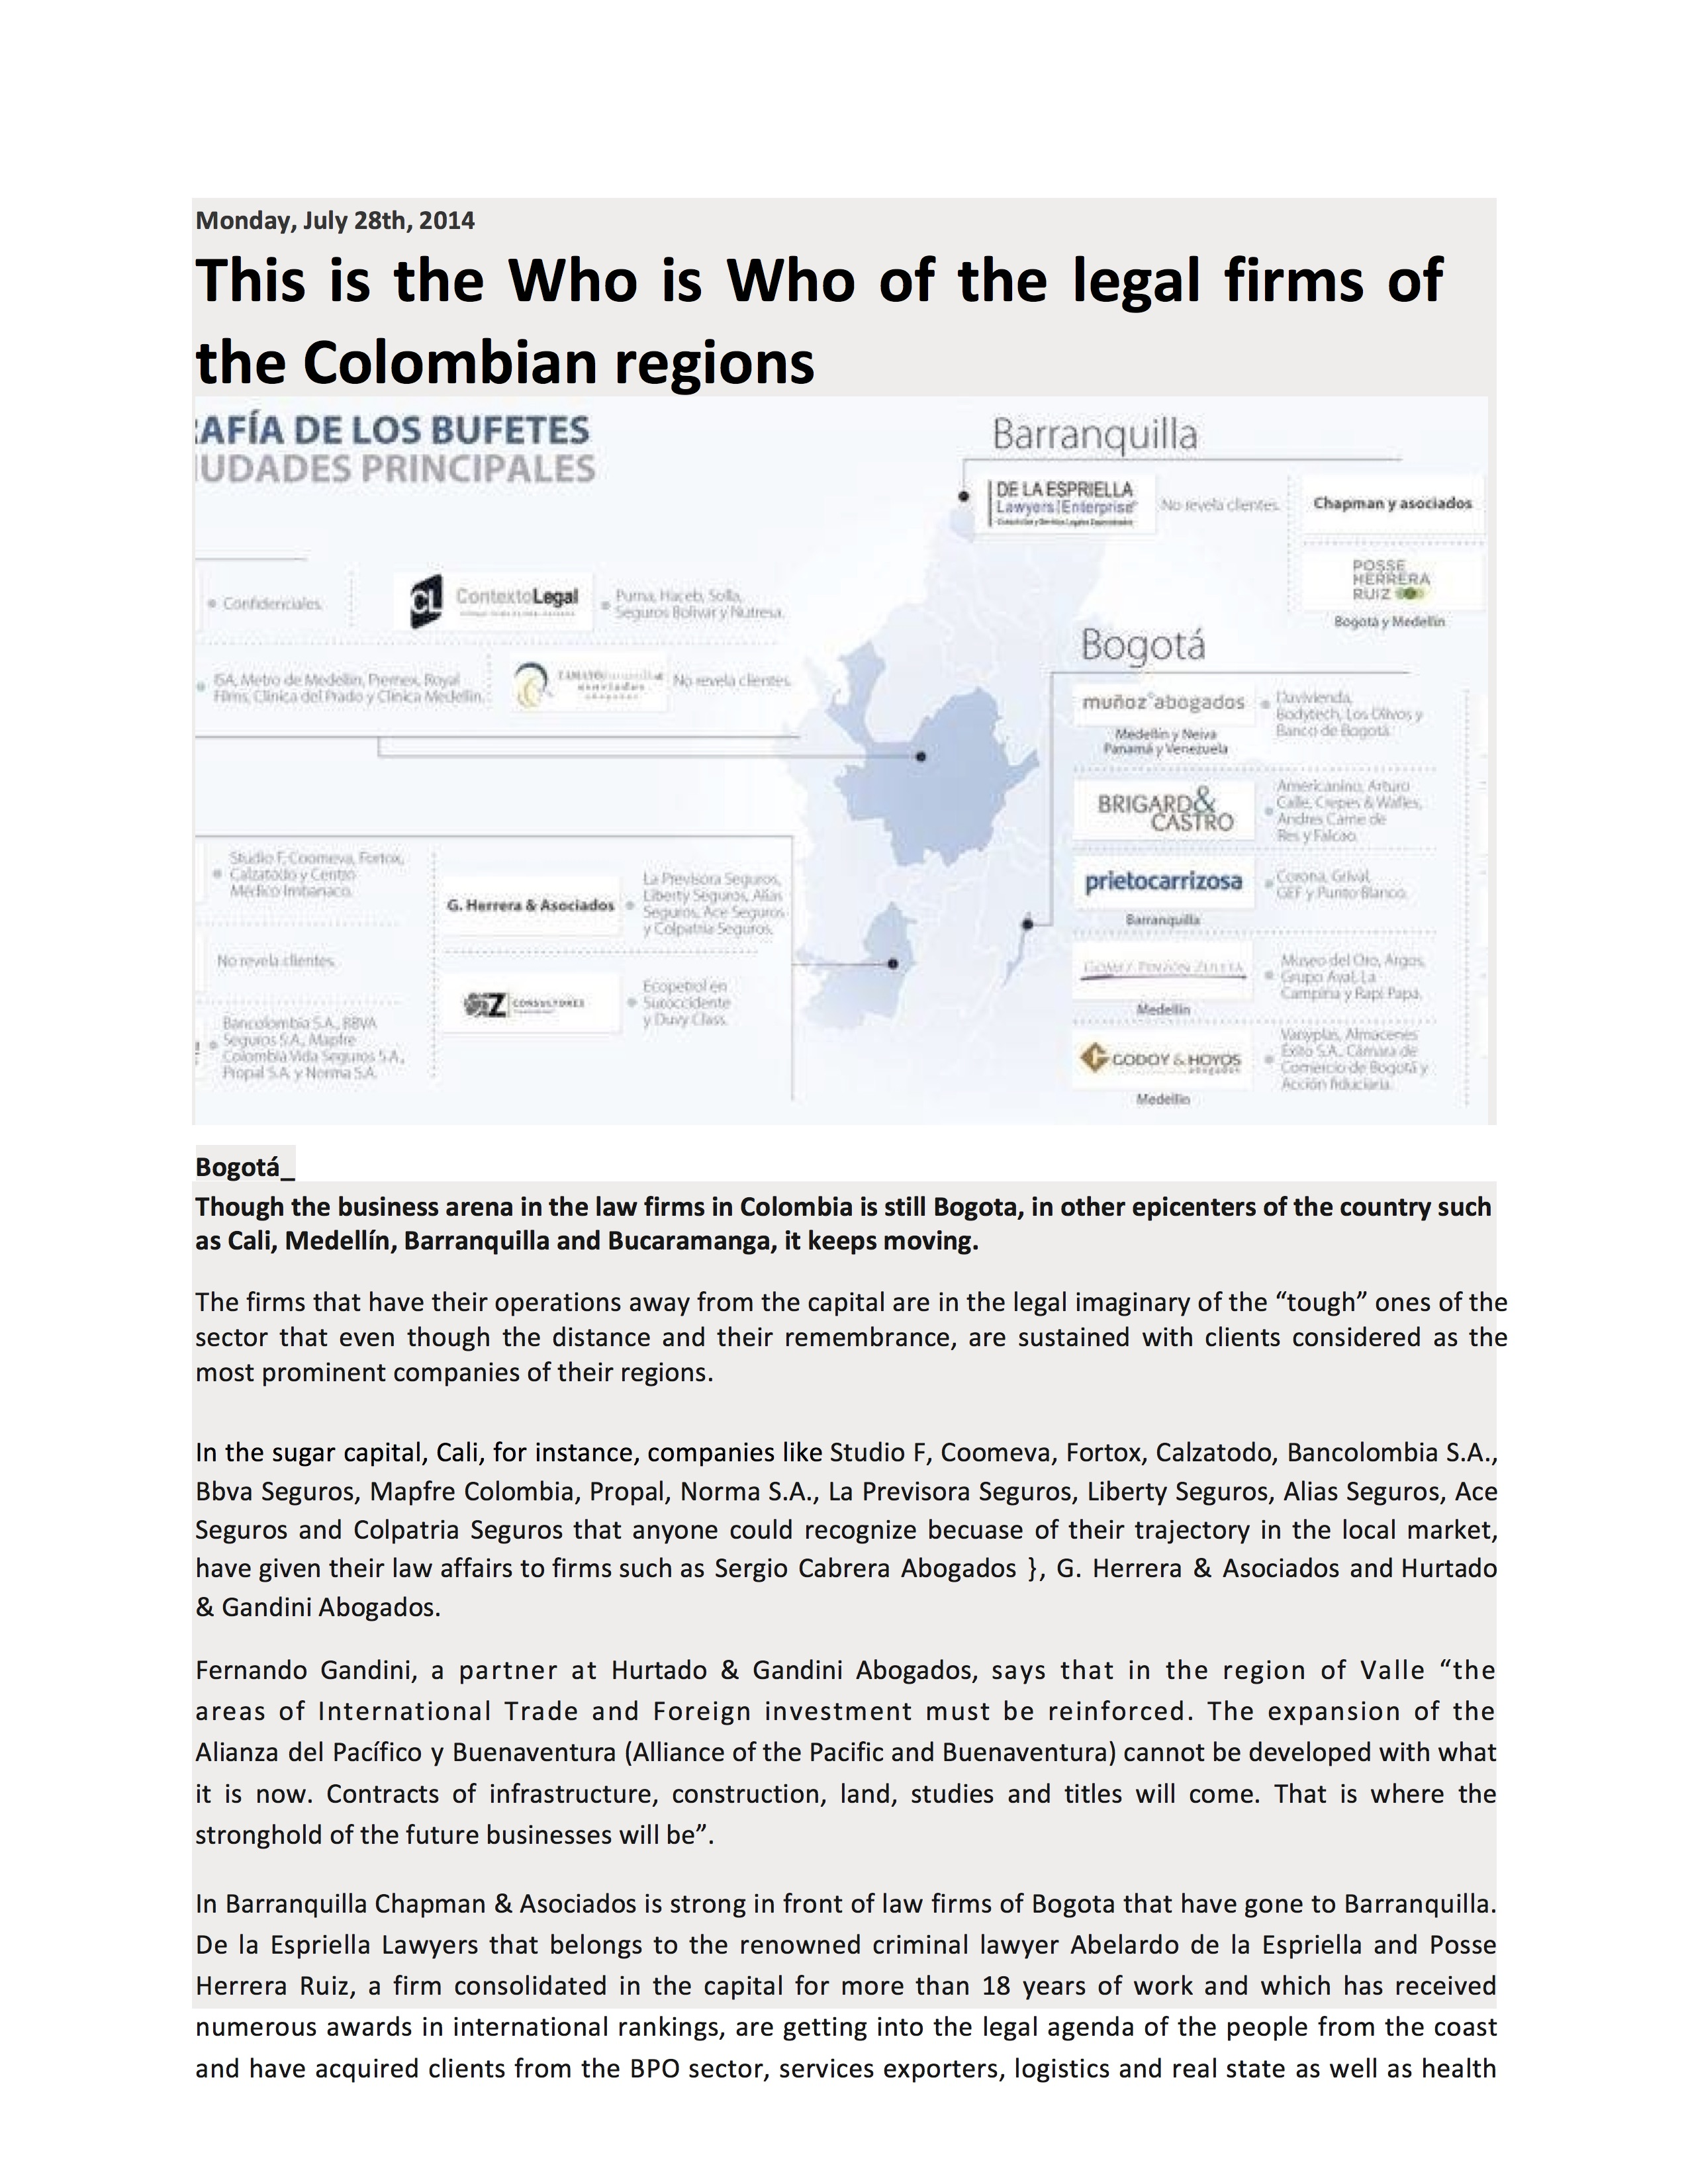 la-republica-this-is-the-who-is-who-of-the-legal-firms-of-the-colombian-regions1